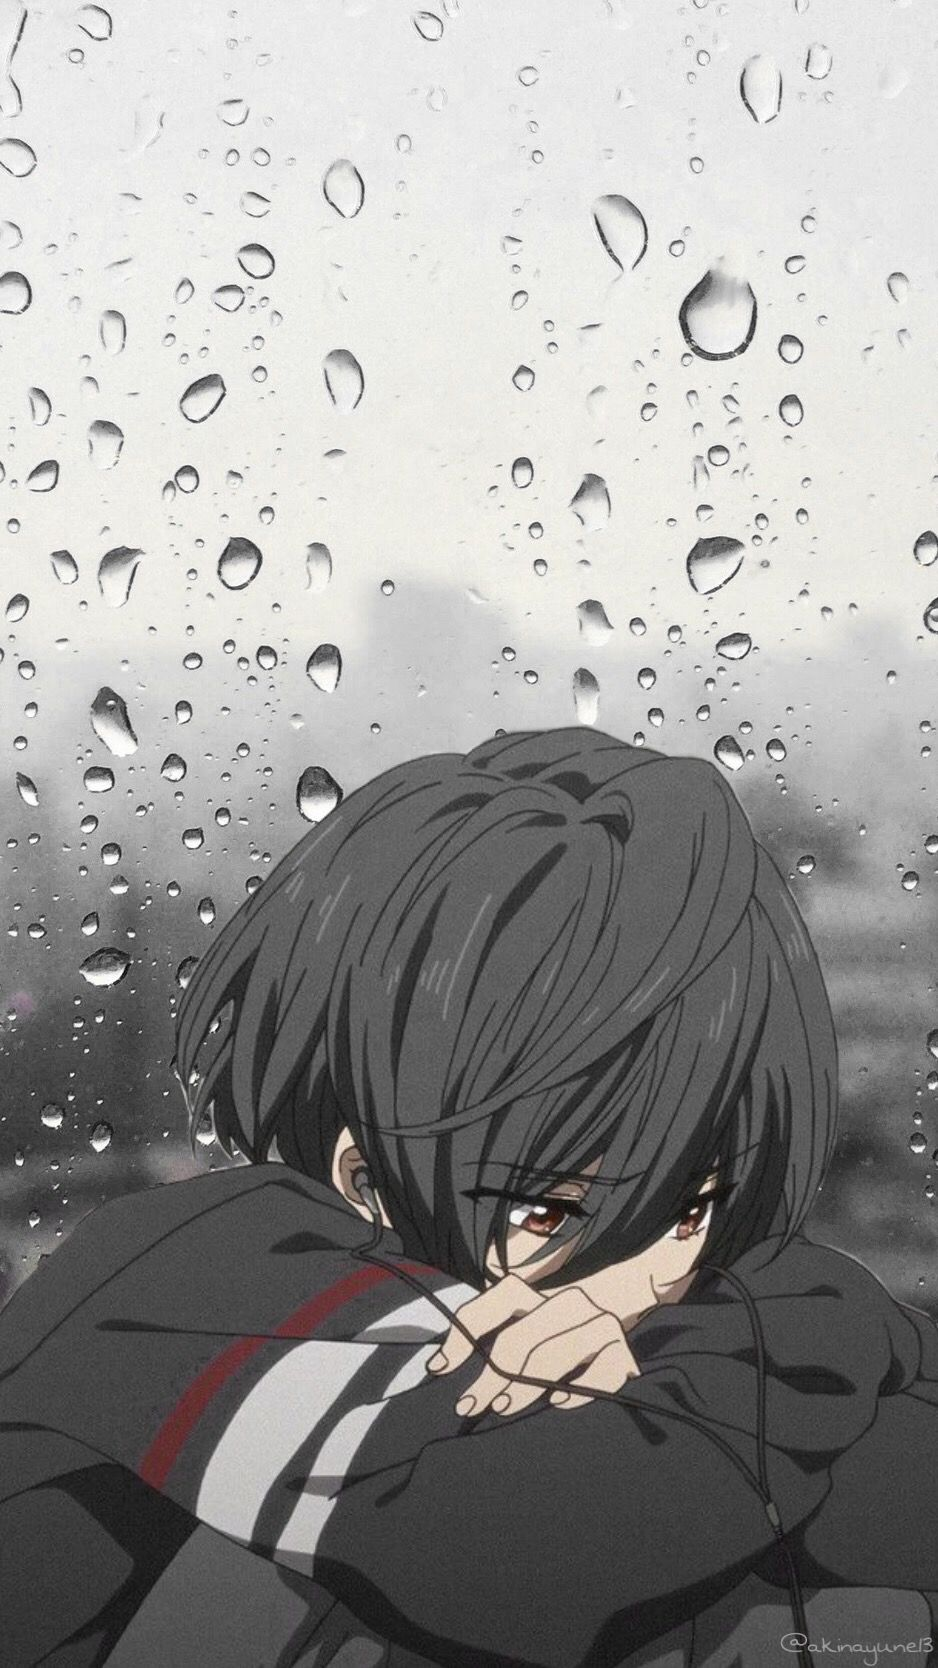 Sad Anime Wallpaper Phone : anime, wallpaper, phone, Depression